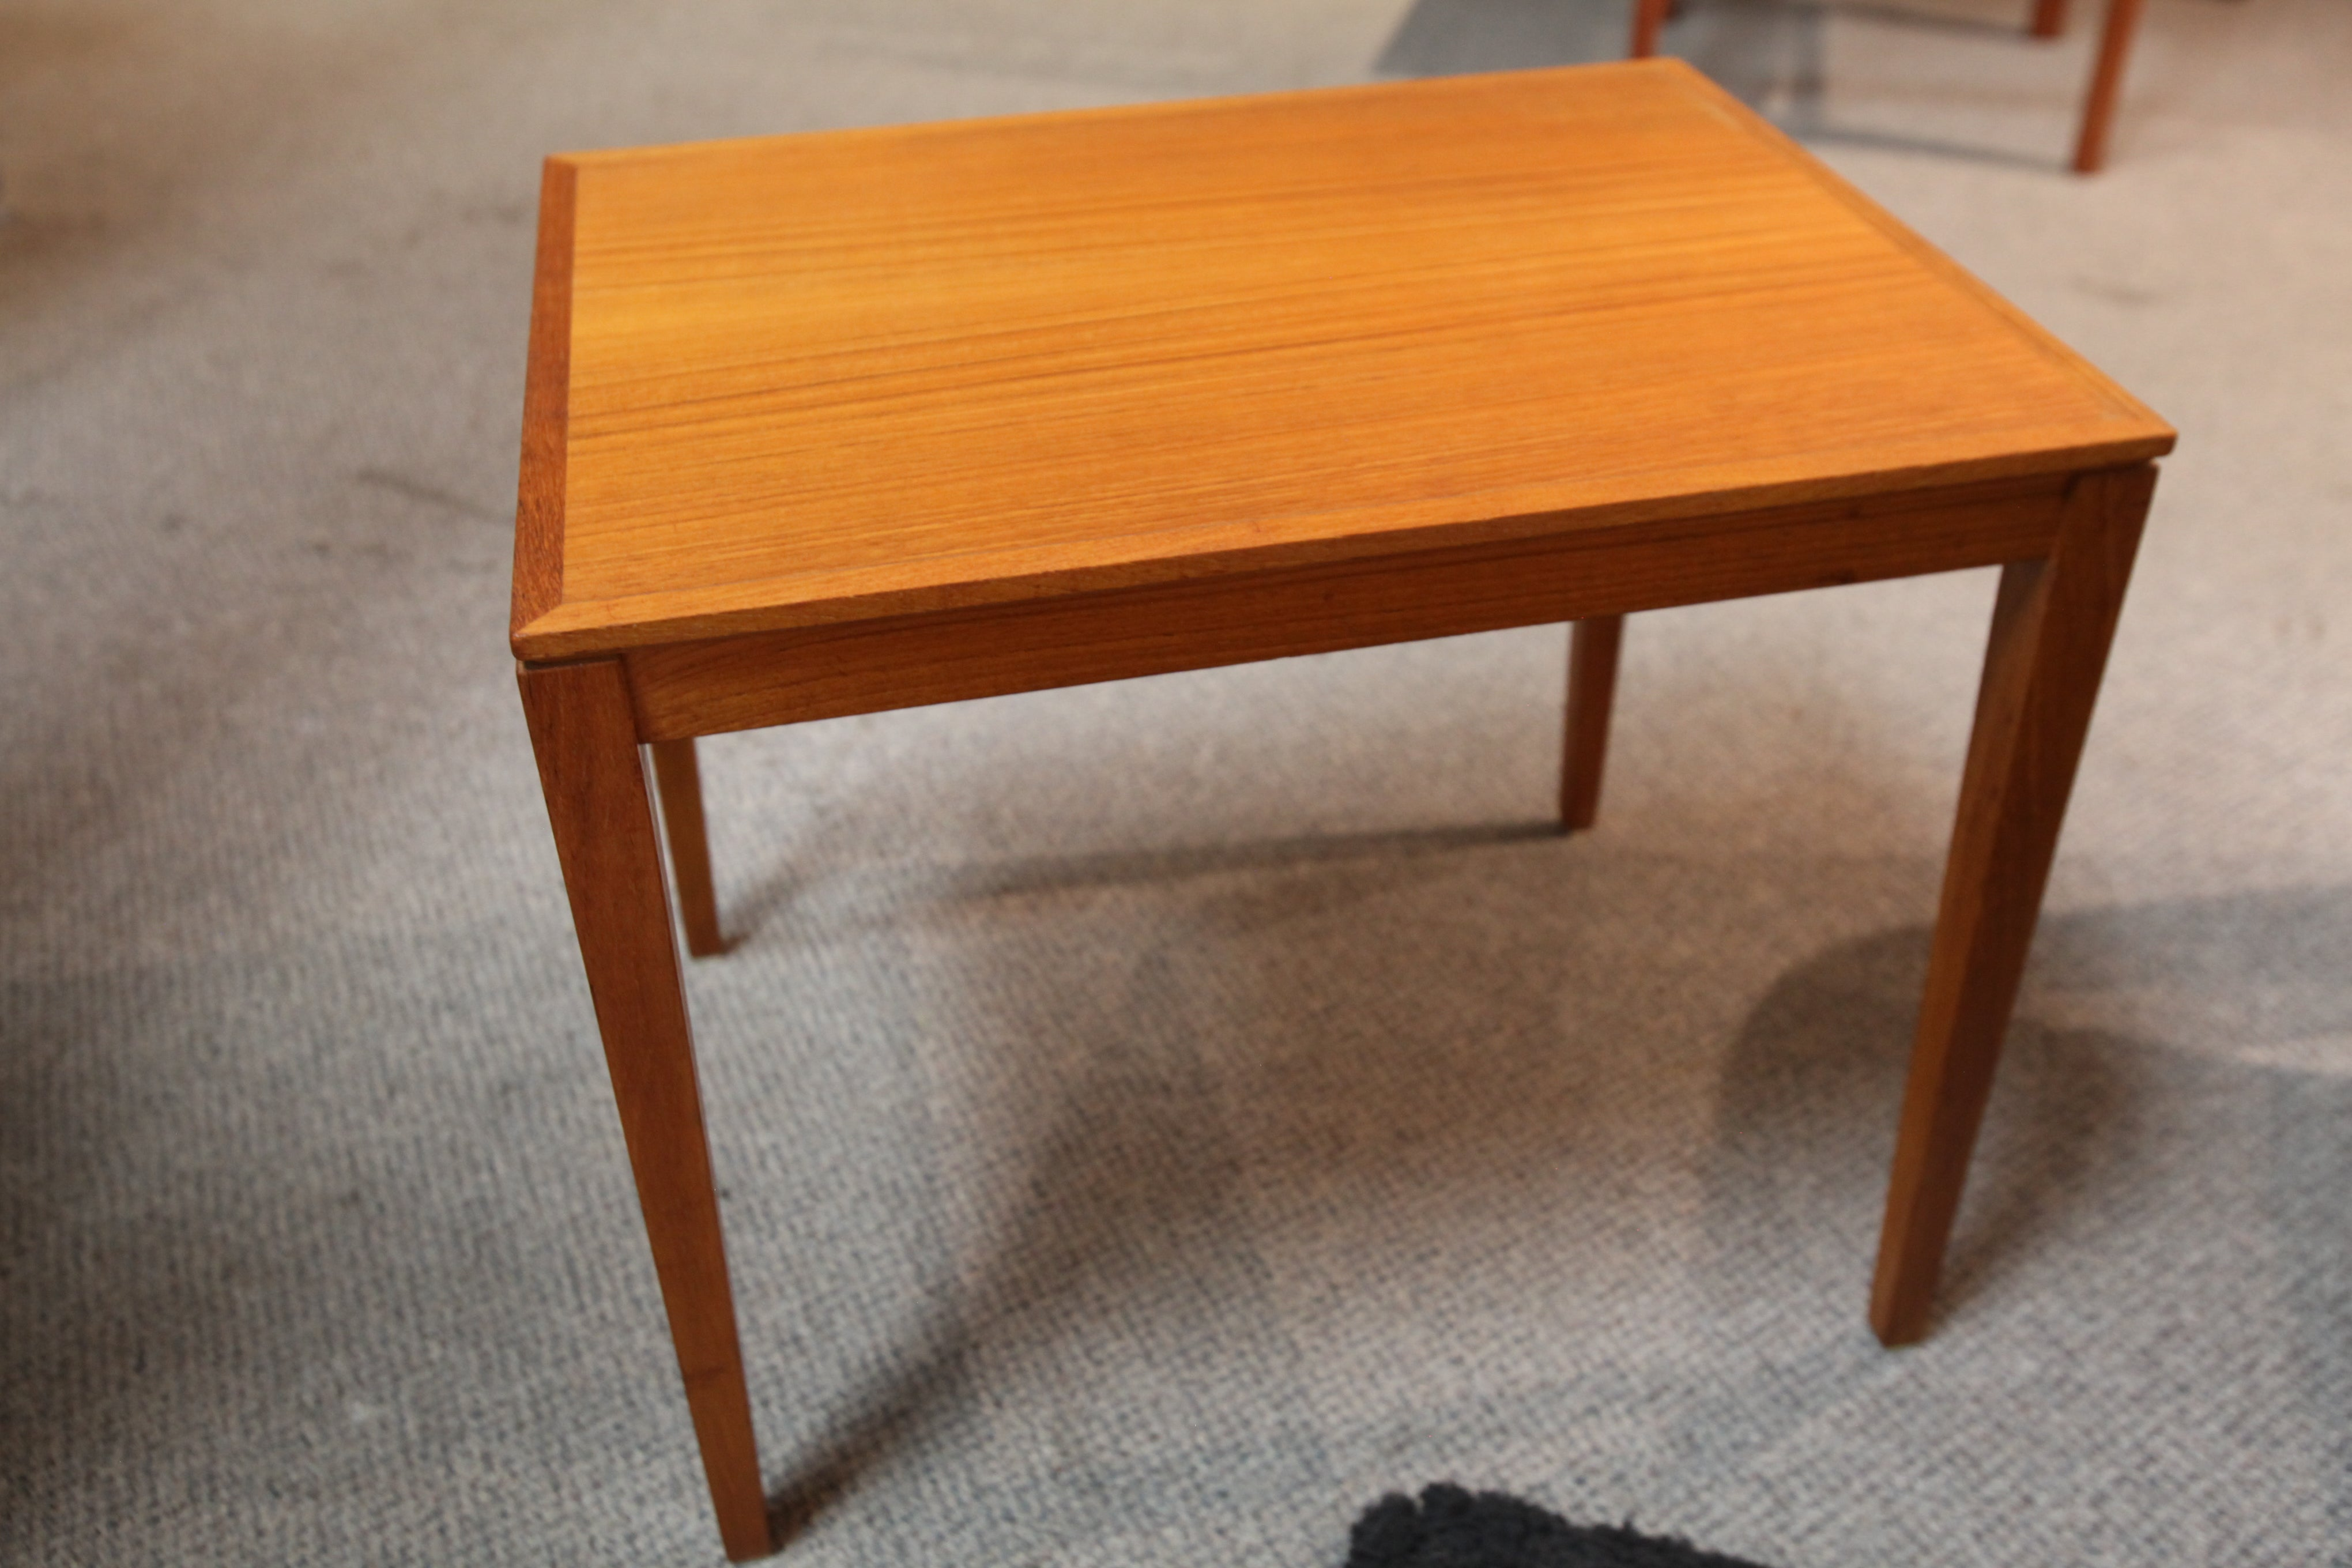 "Small Vintage Danish Teak Side Table by Bent Silberg (20.5""x15.75""x17.5""H)"